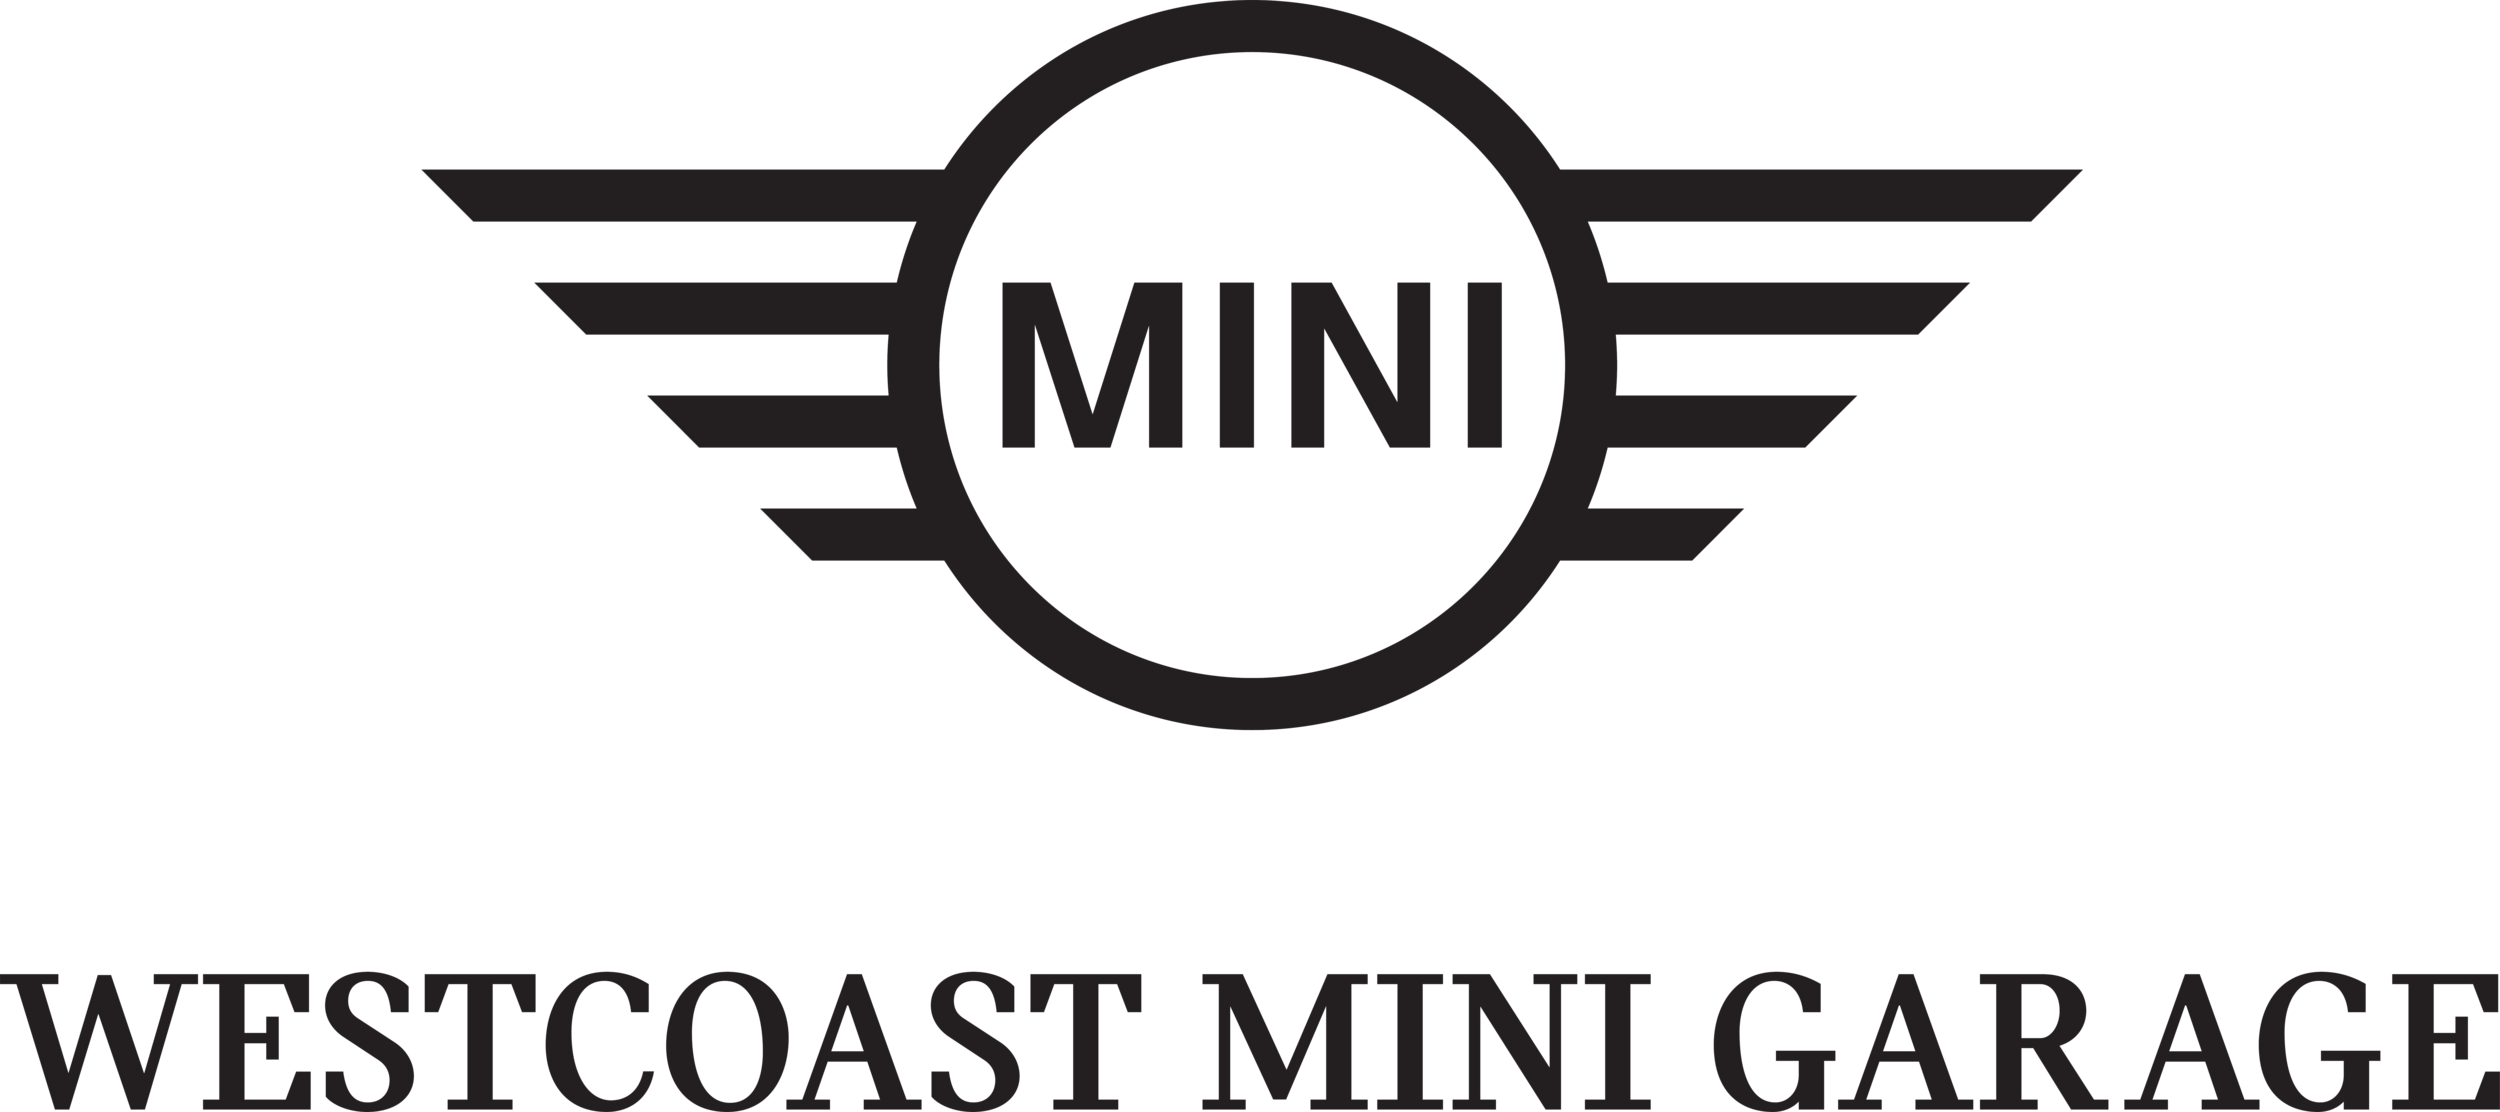 Westcoast MINI Garage Wordmark Stacked_BLACK.png